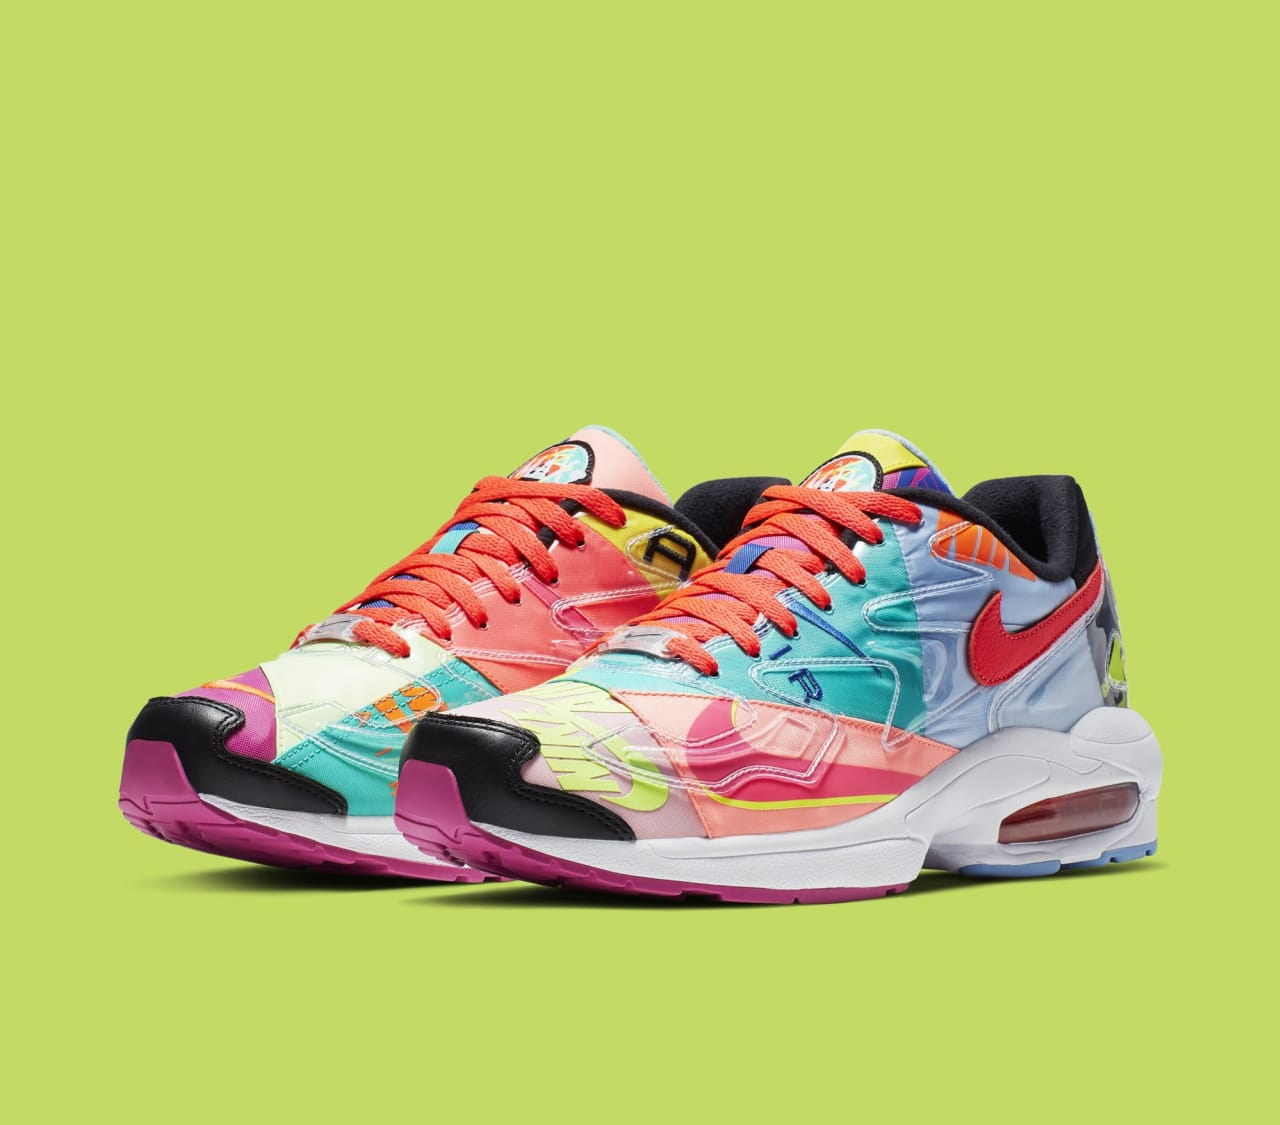 738d99450276e Atmos x Nike Air Max2 Light Air Max Day 2019 Release Date